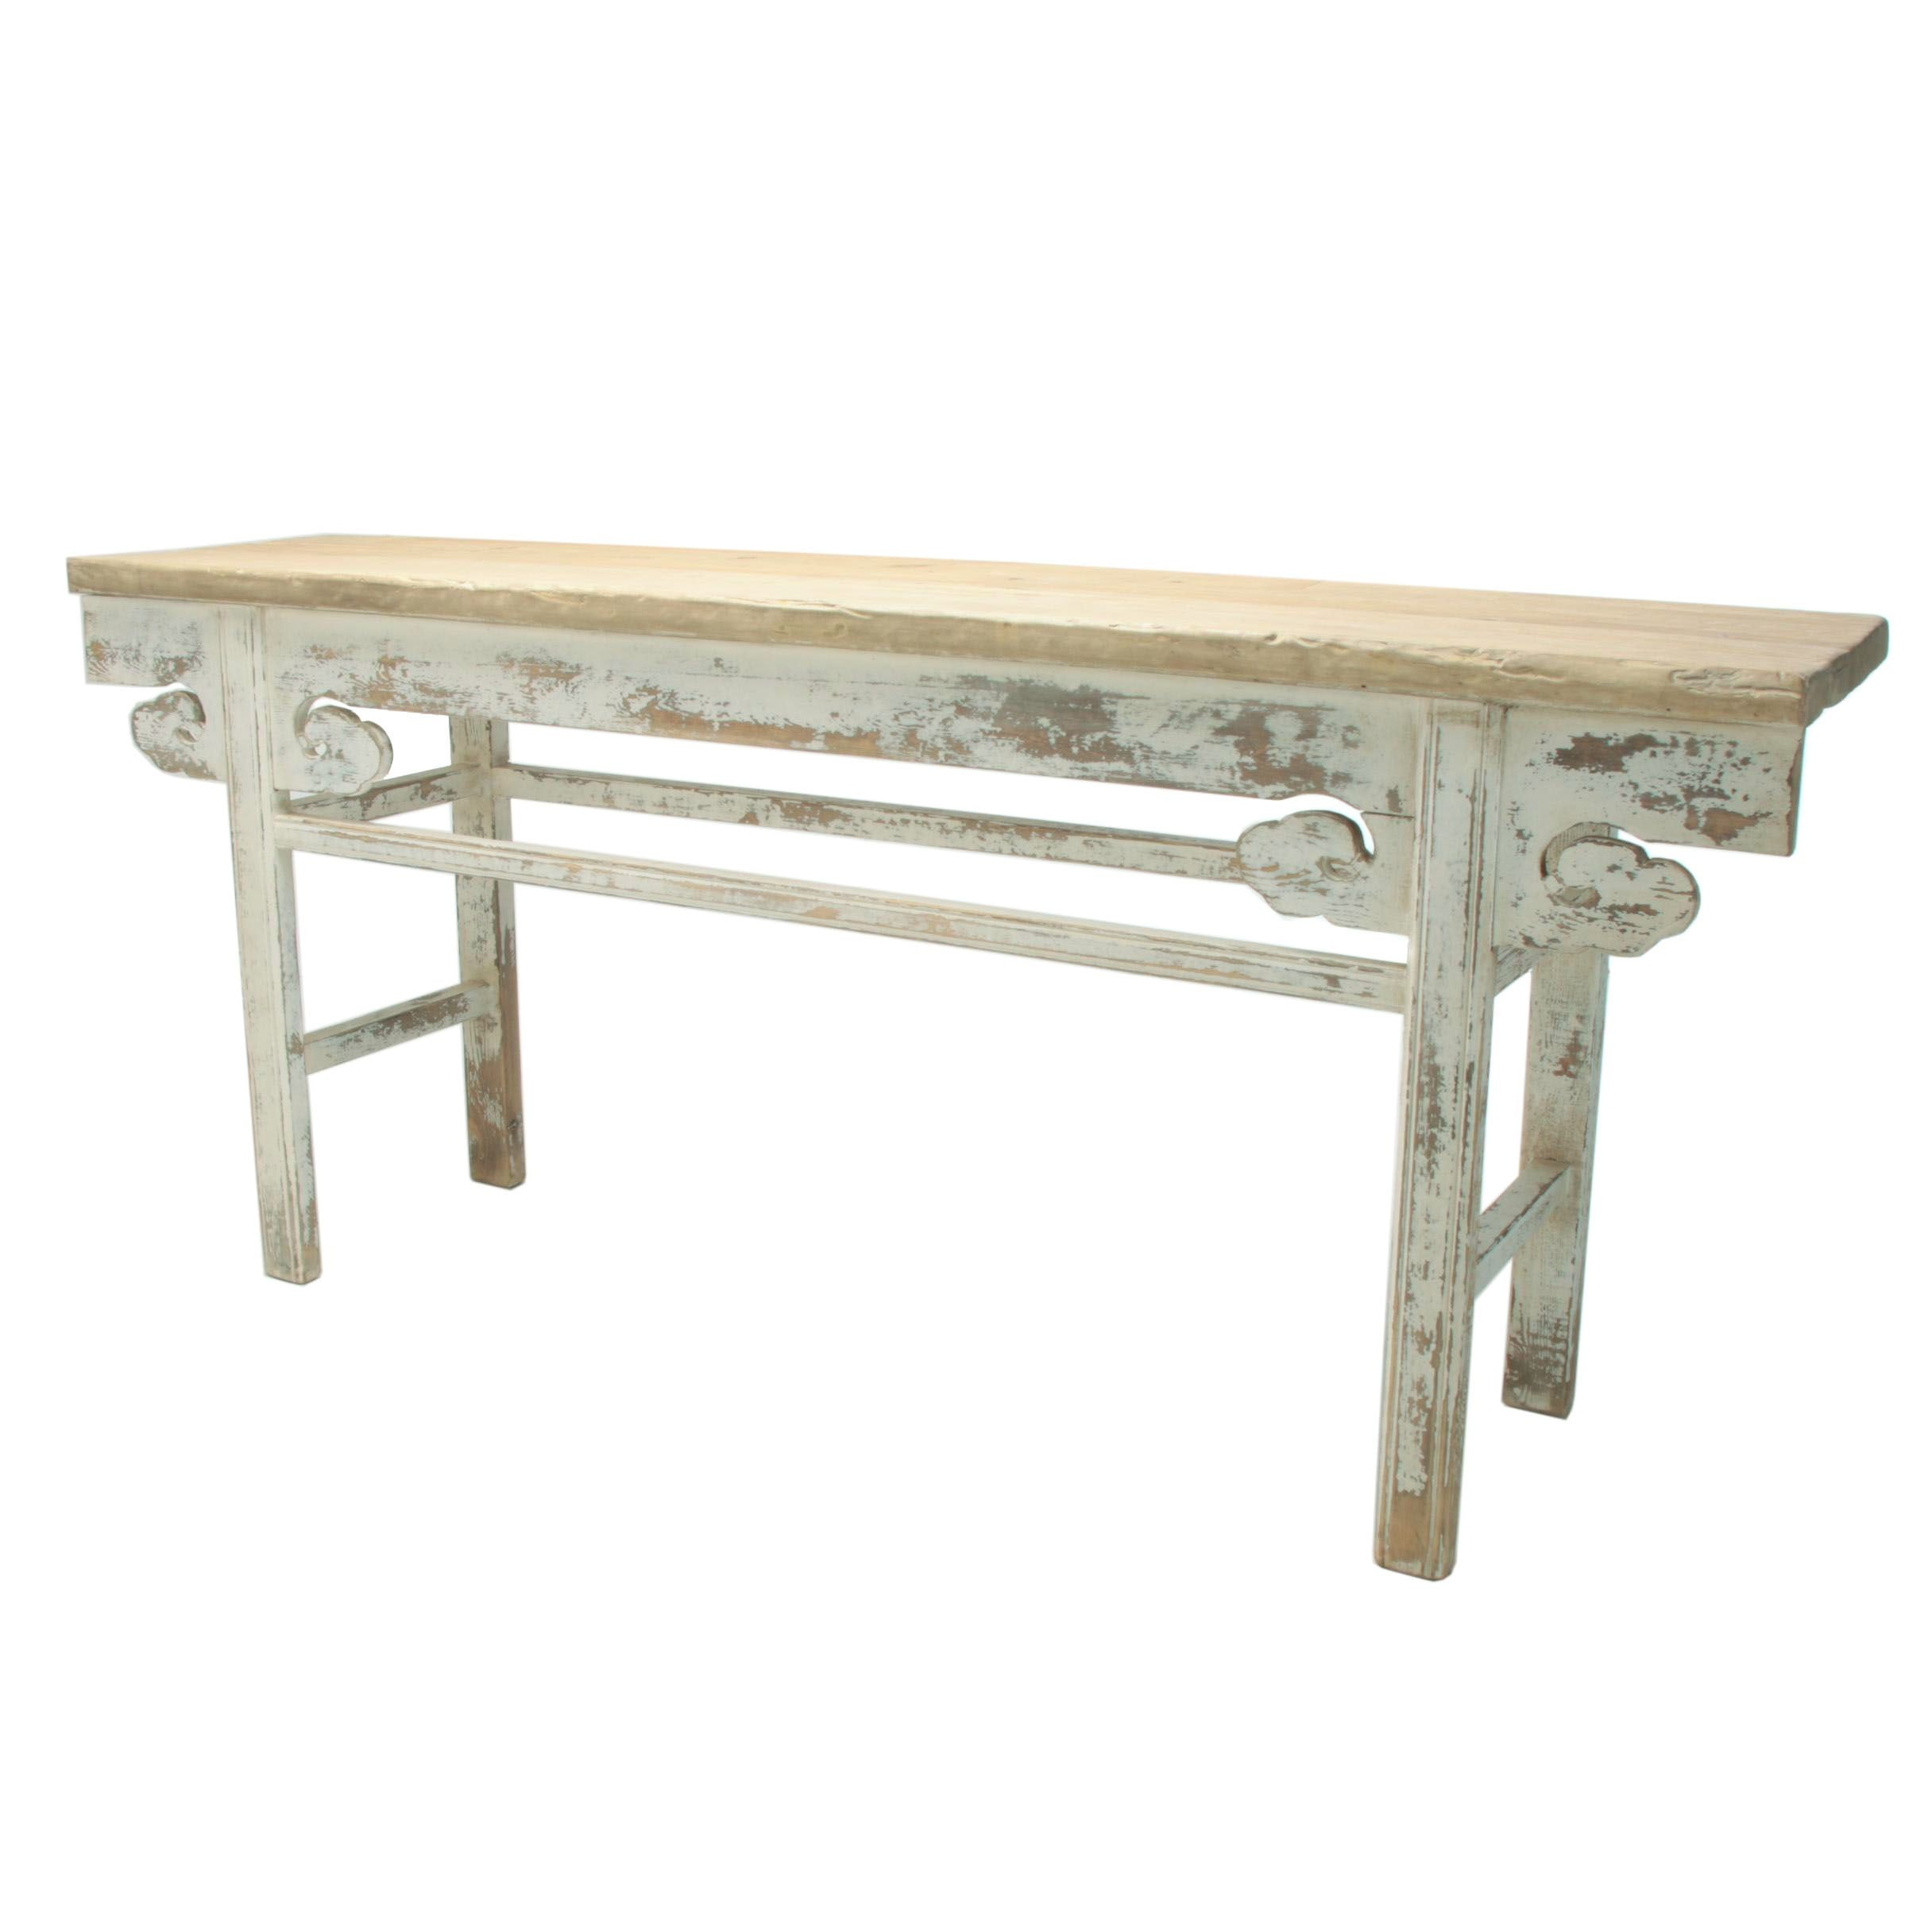 "Chinese Provincial Style Painted Pine ""Low Cloud"" Console Table"